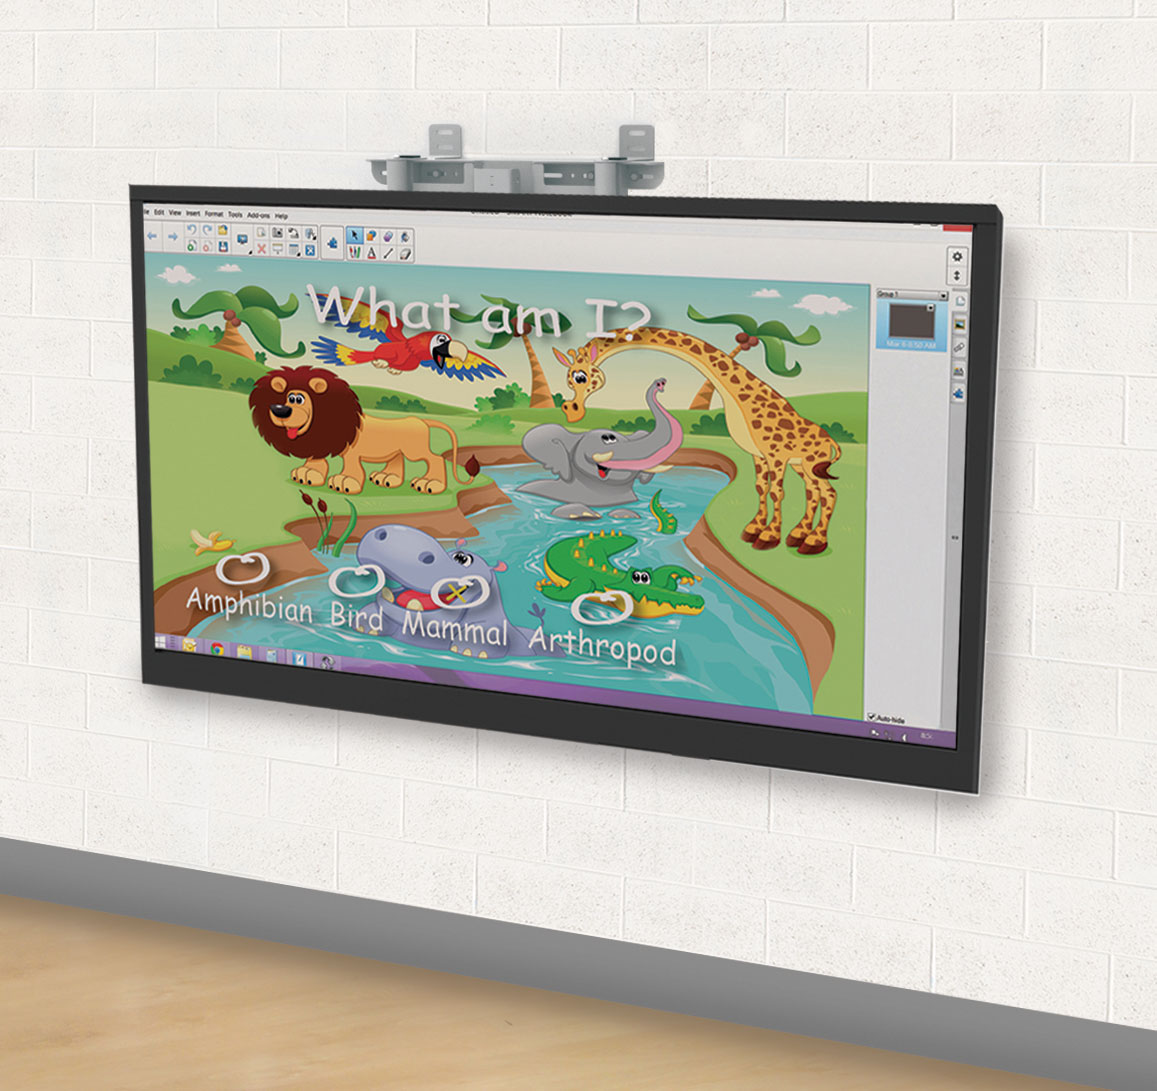 Height adjustable wall mount for interactive flat panels